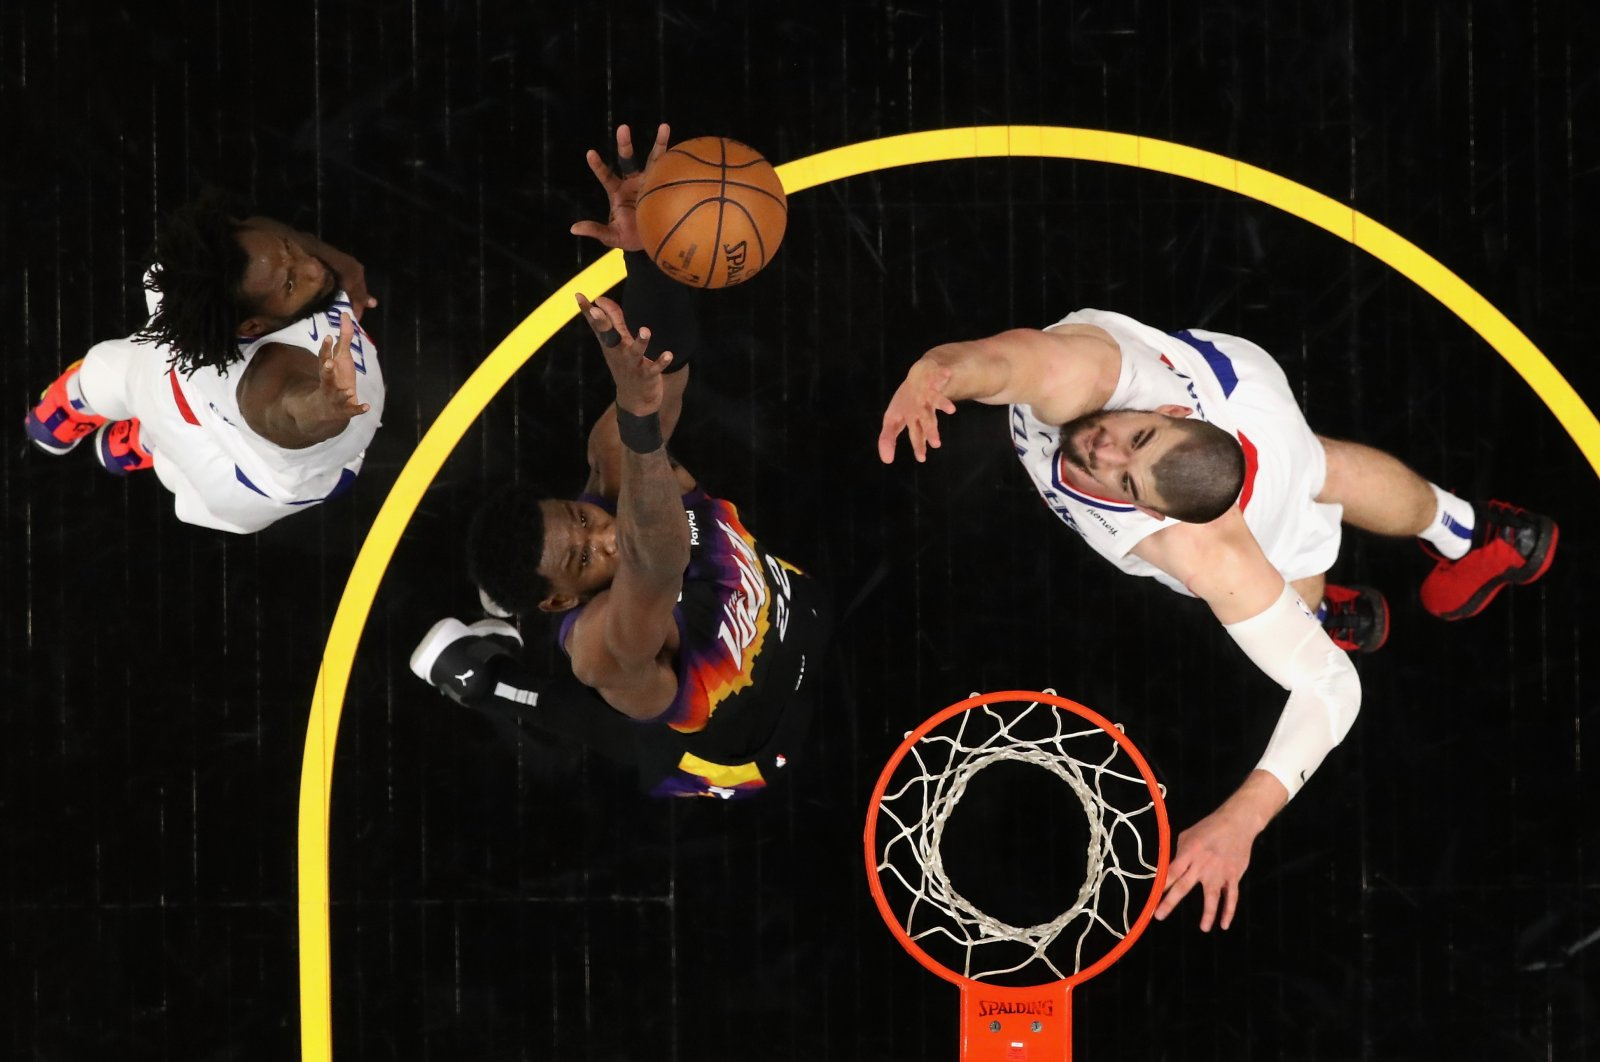 Phoenix Suns Deandre Ayton (C) catches the ball before a slam dunk over LA Clippers' Patrick Beverley (L) and Ivica Zubac during Game 2 of the Western Conference Finals at Phoenix Suns Arena, Phoenix, Arizona,  June 22, 2021. (AFP Photo)